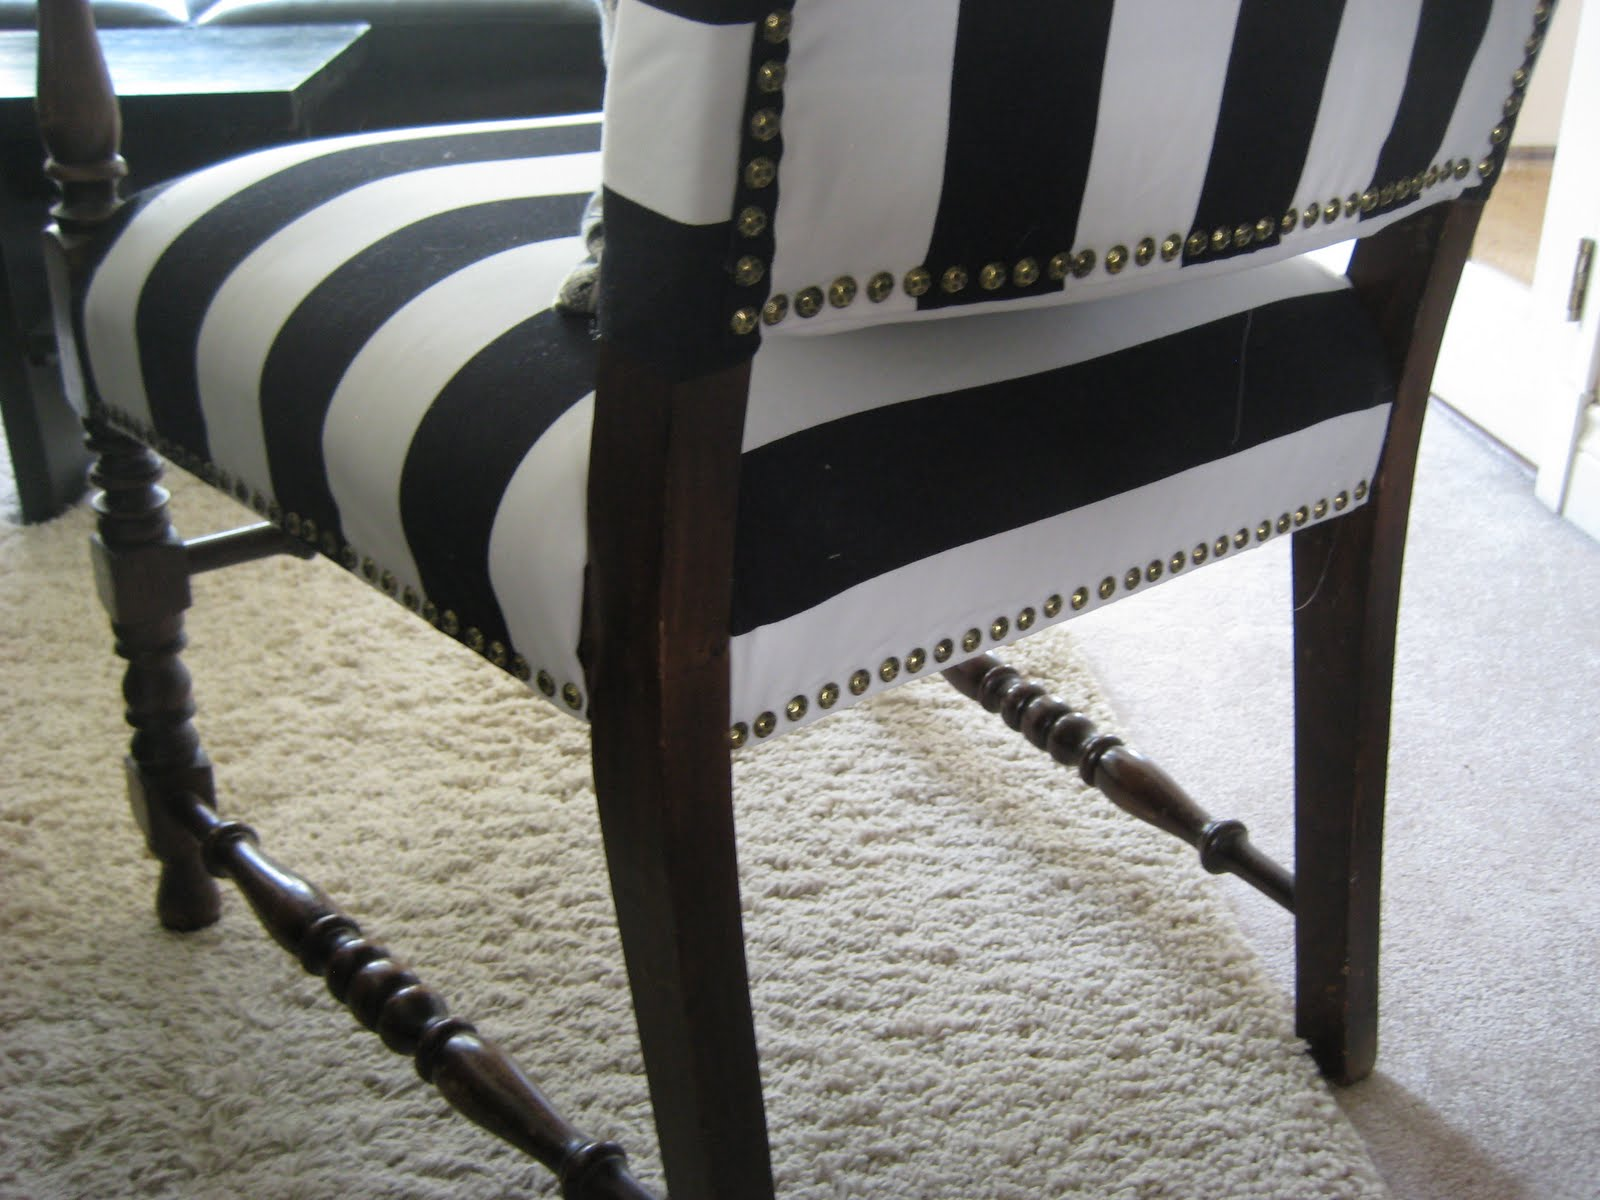 Black And White Striped Chair Black And White Striped Armchair The Reveal Markova Design